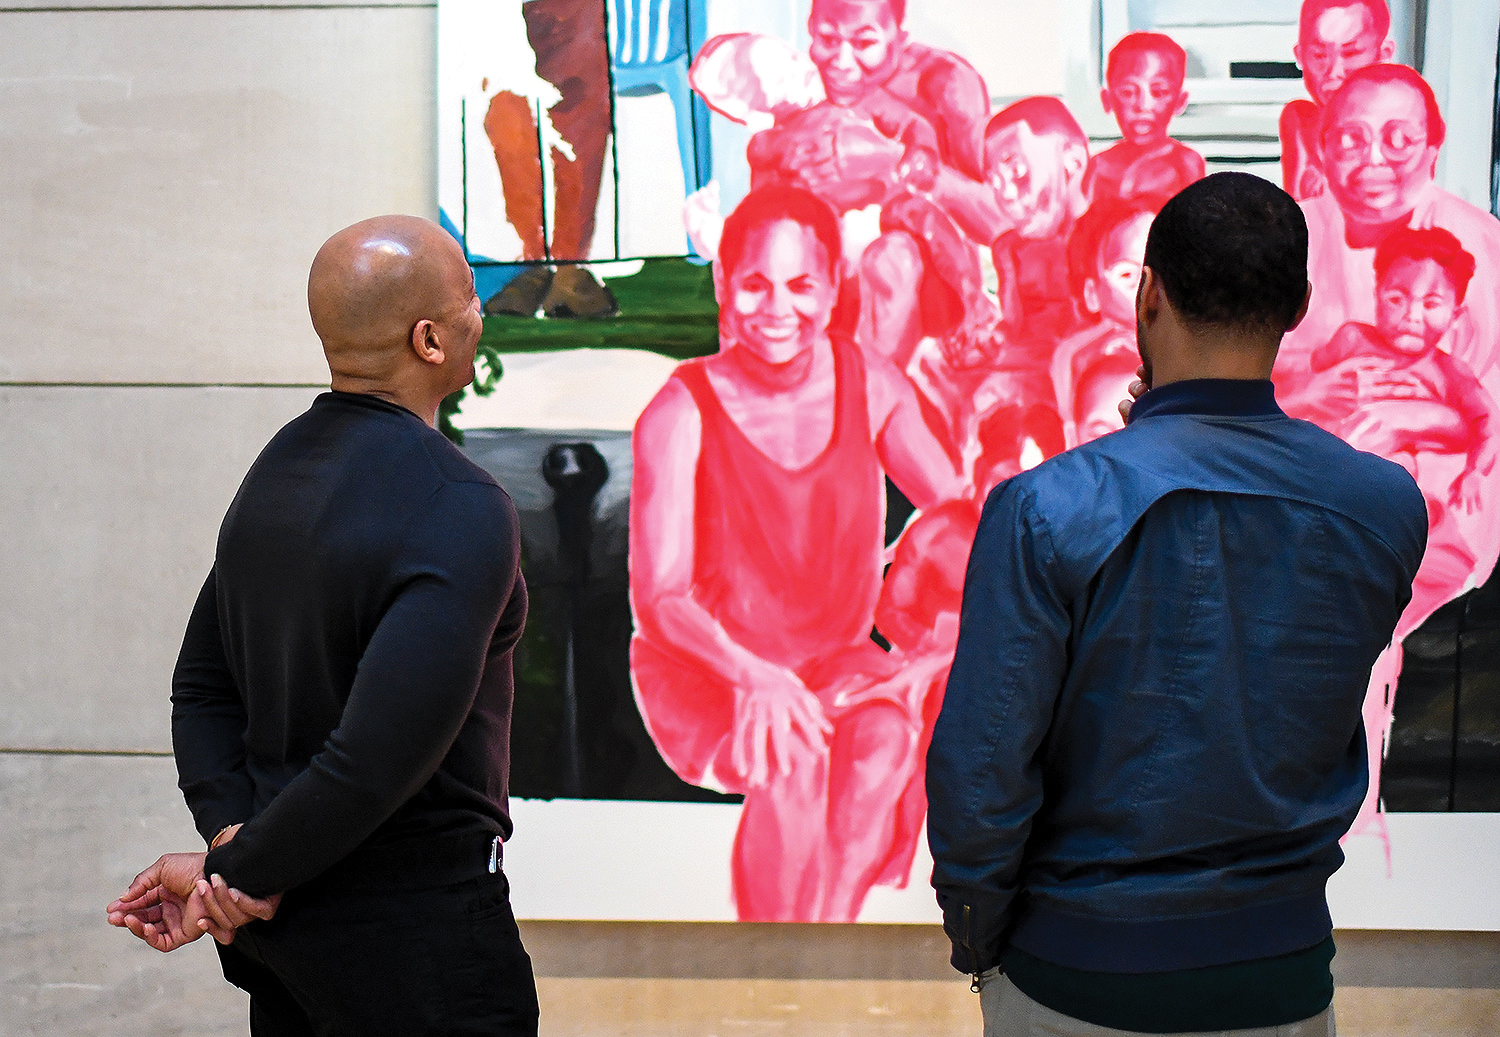 WESLEYAN: APRIL IS ART THESIS MONTH IN ZILKHA